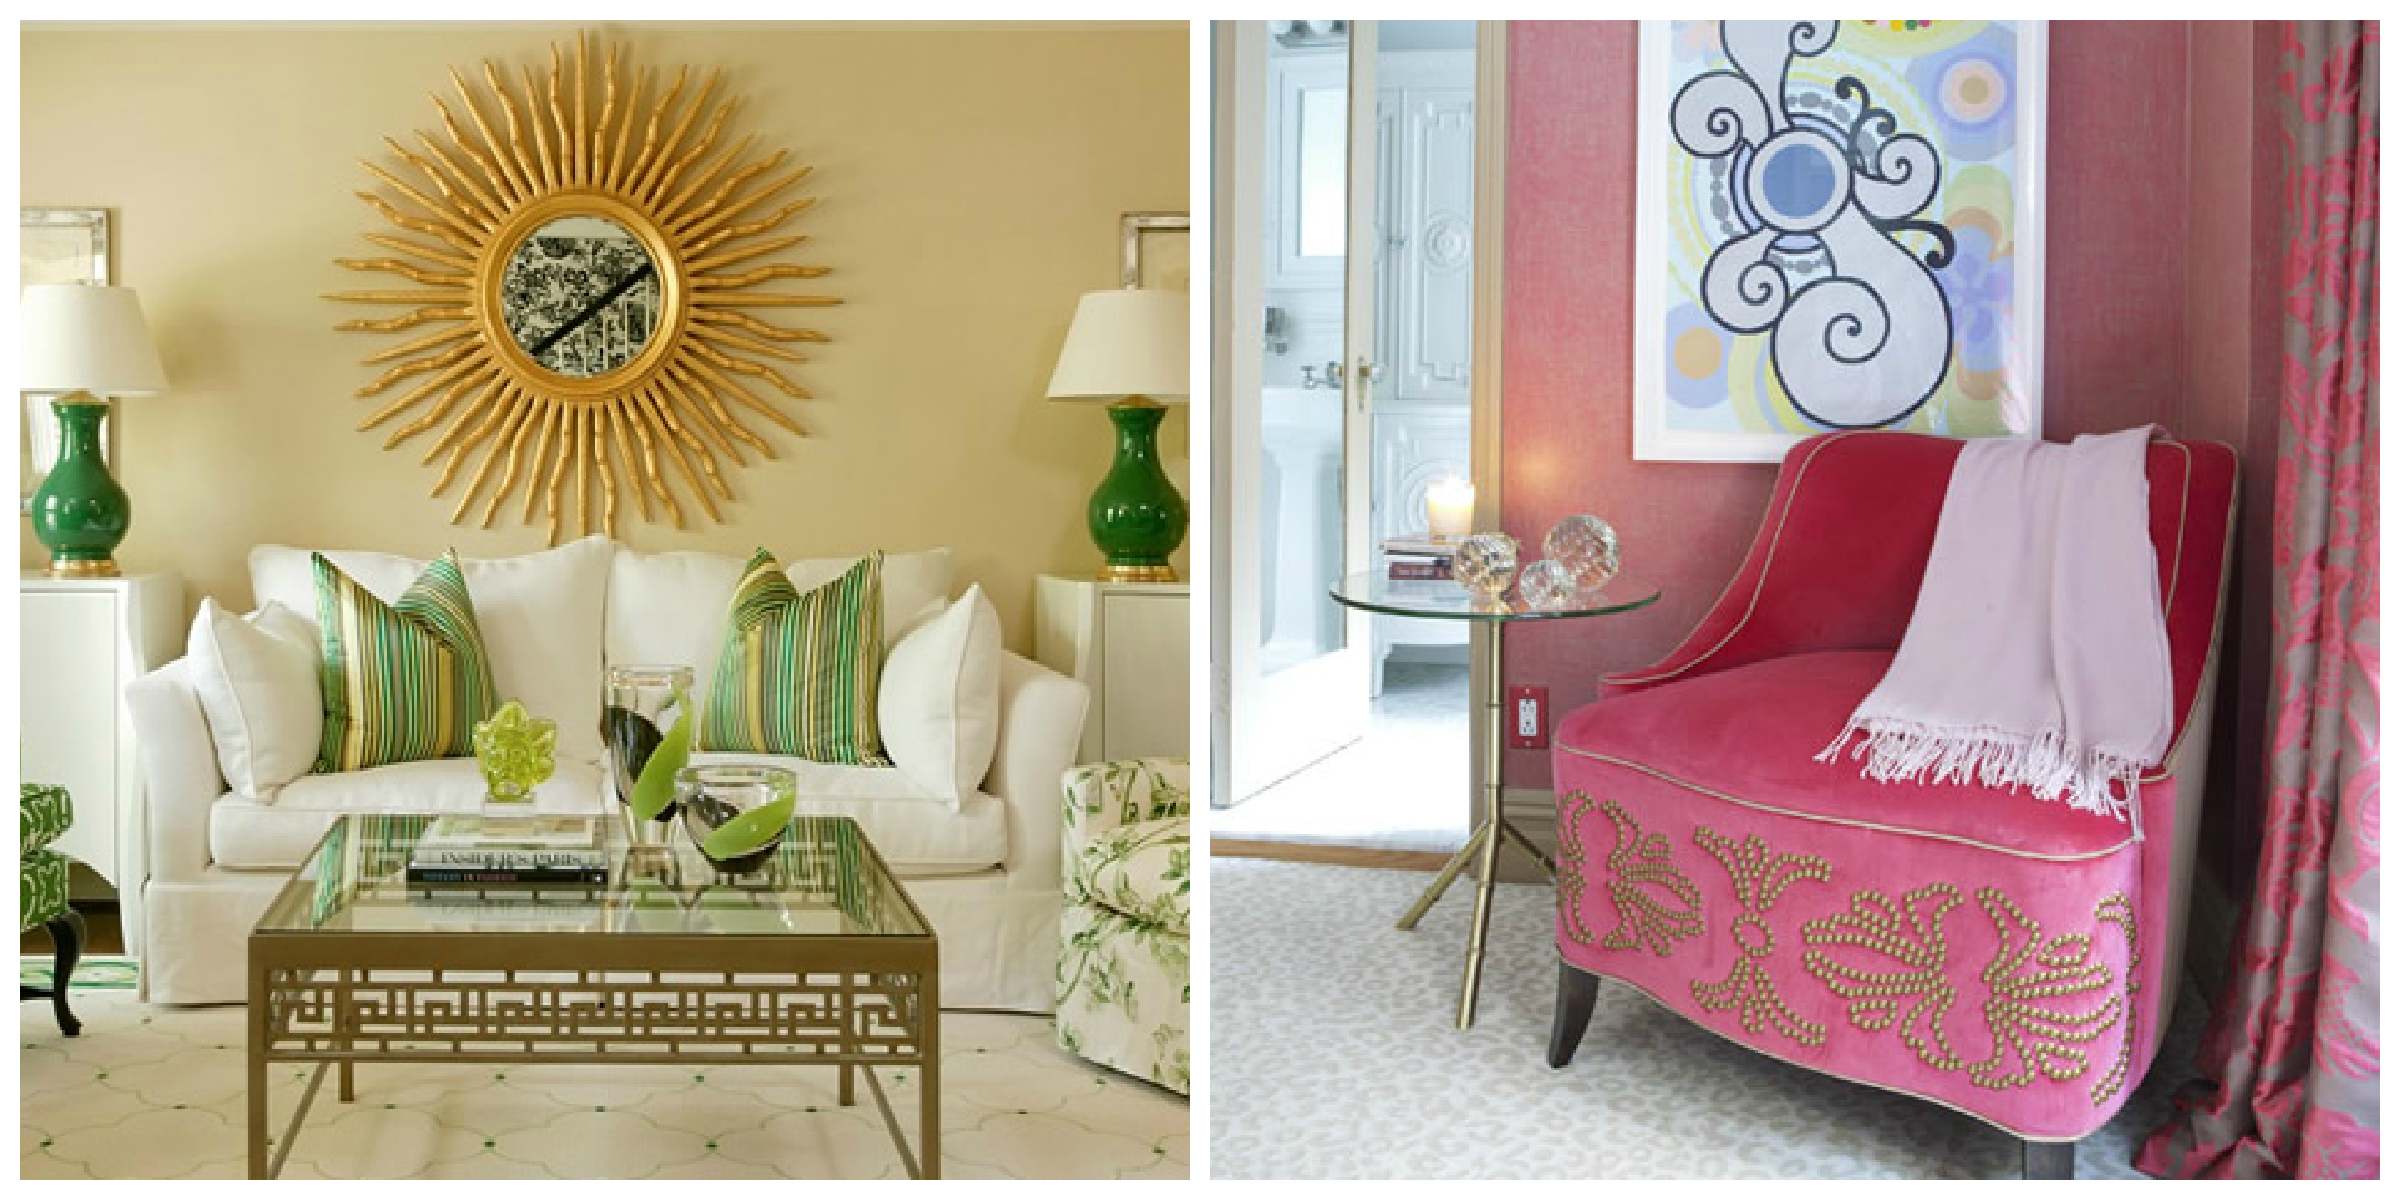 Explore Spring Home Decor Ideaore